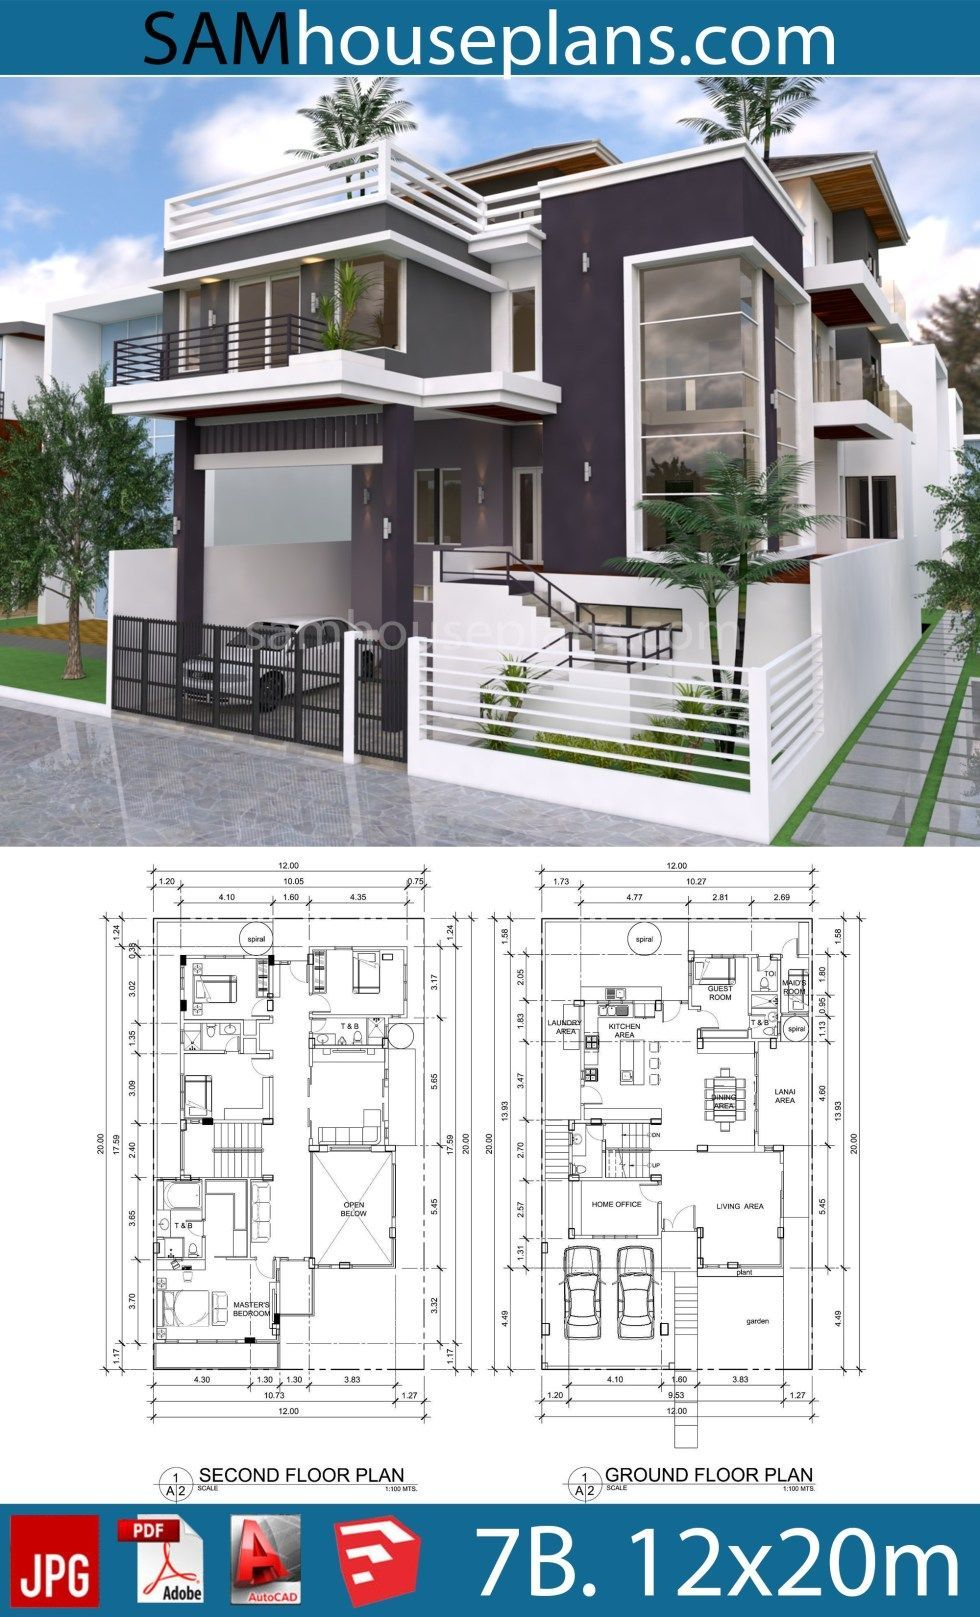 House Plans 12mx20m With 7 Bedrooms Sam House Plans In 2020 Architectural House Plans House Projects Architecture Duplex House Design